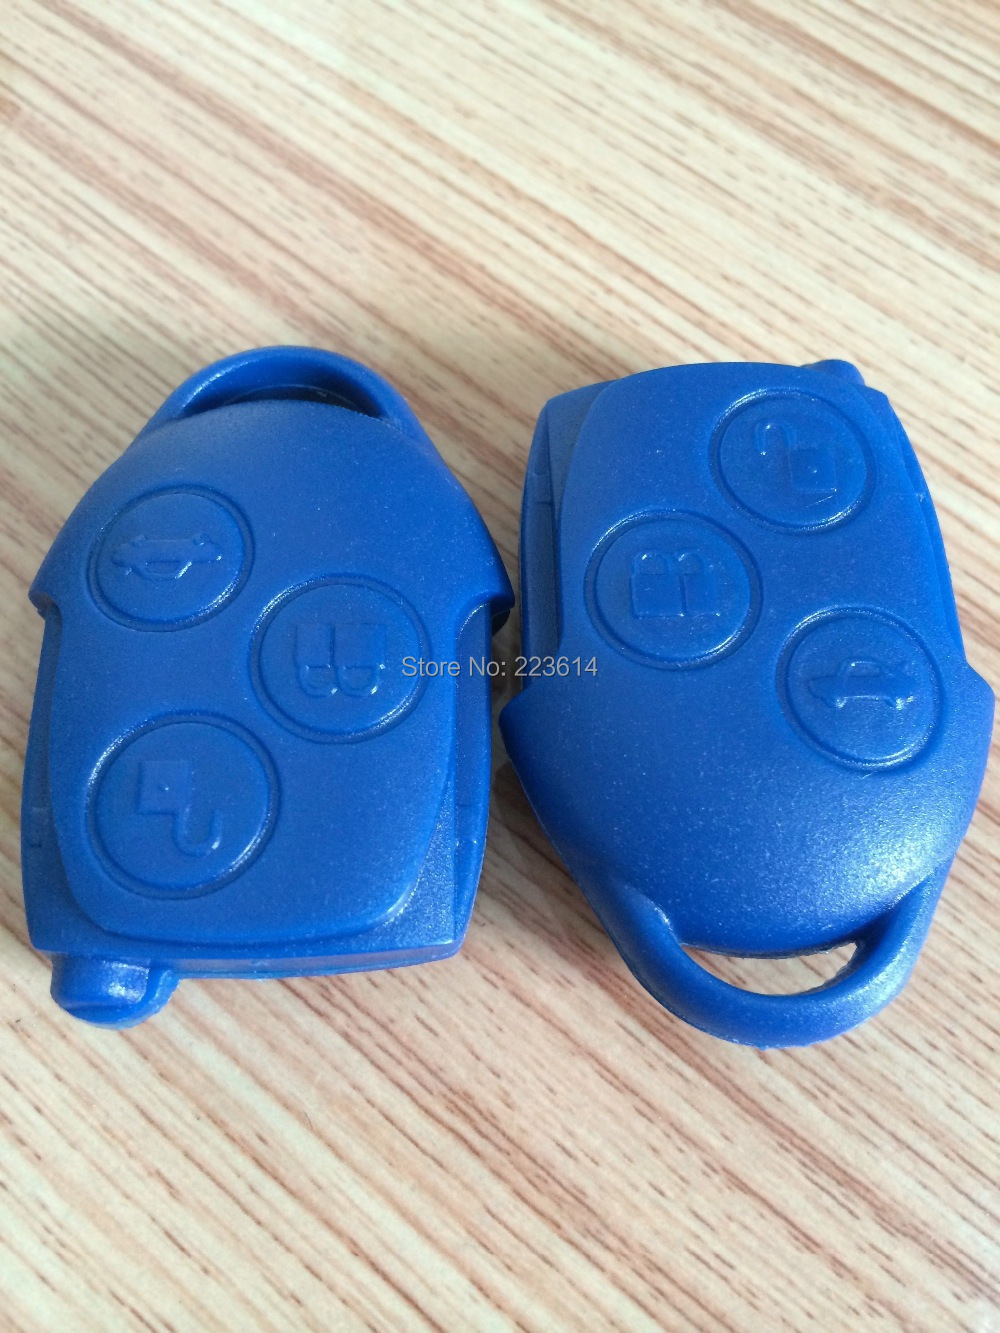 Blue 3B Remote Key For Ford Transit Ford Remote Controls 433MHZ Fit For Europe Model Excellent Quality Free Shipping(China (Mainland))